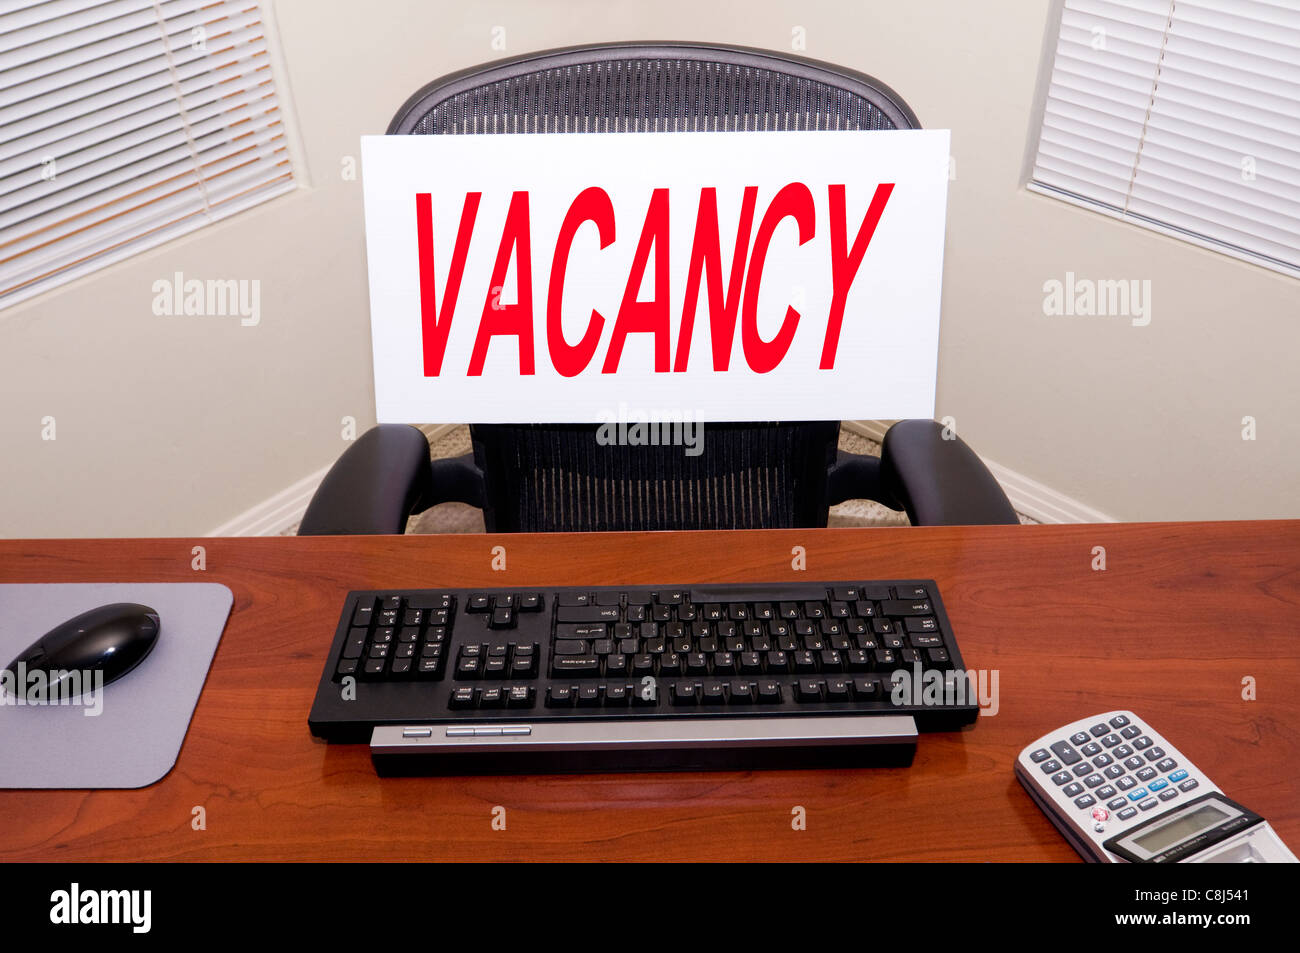 Desk with a Vacancy sign. Your text in the blank name plate. Great for employment/HR/unemployment themes. - Stock Image